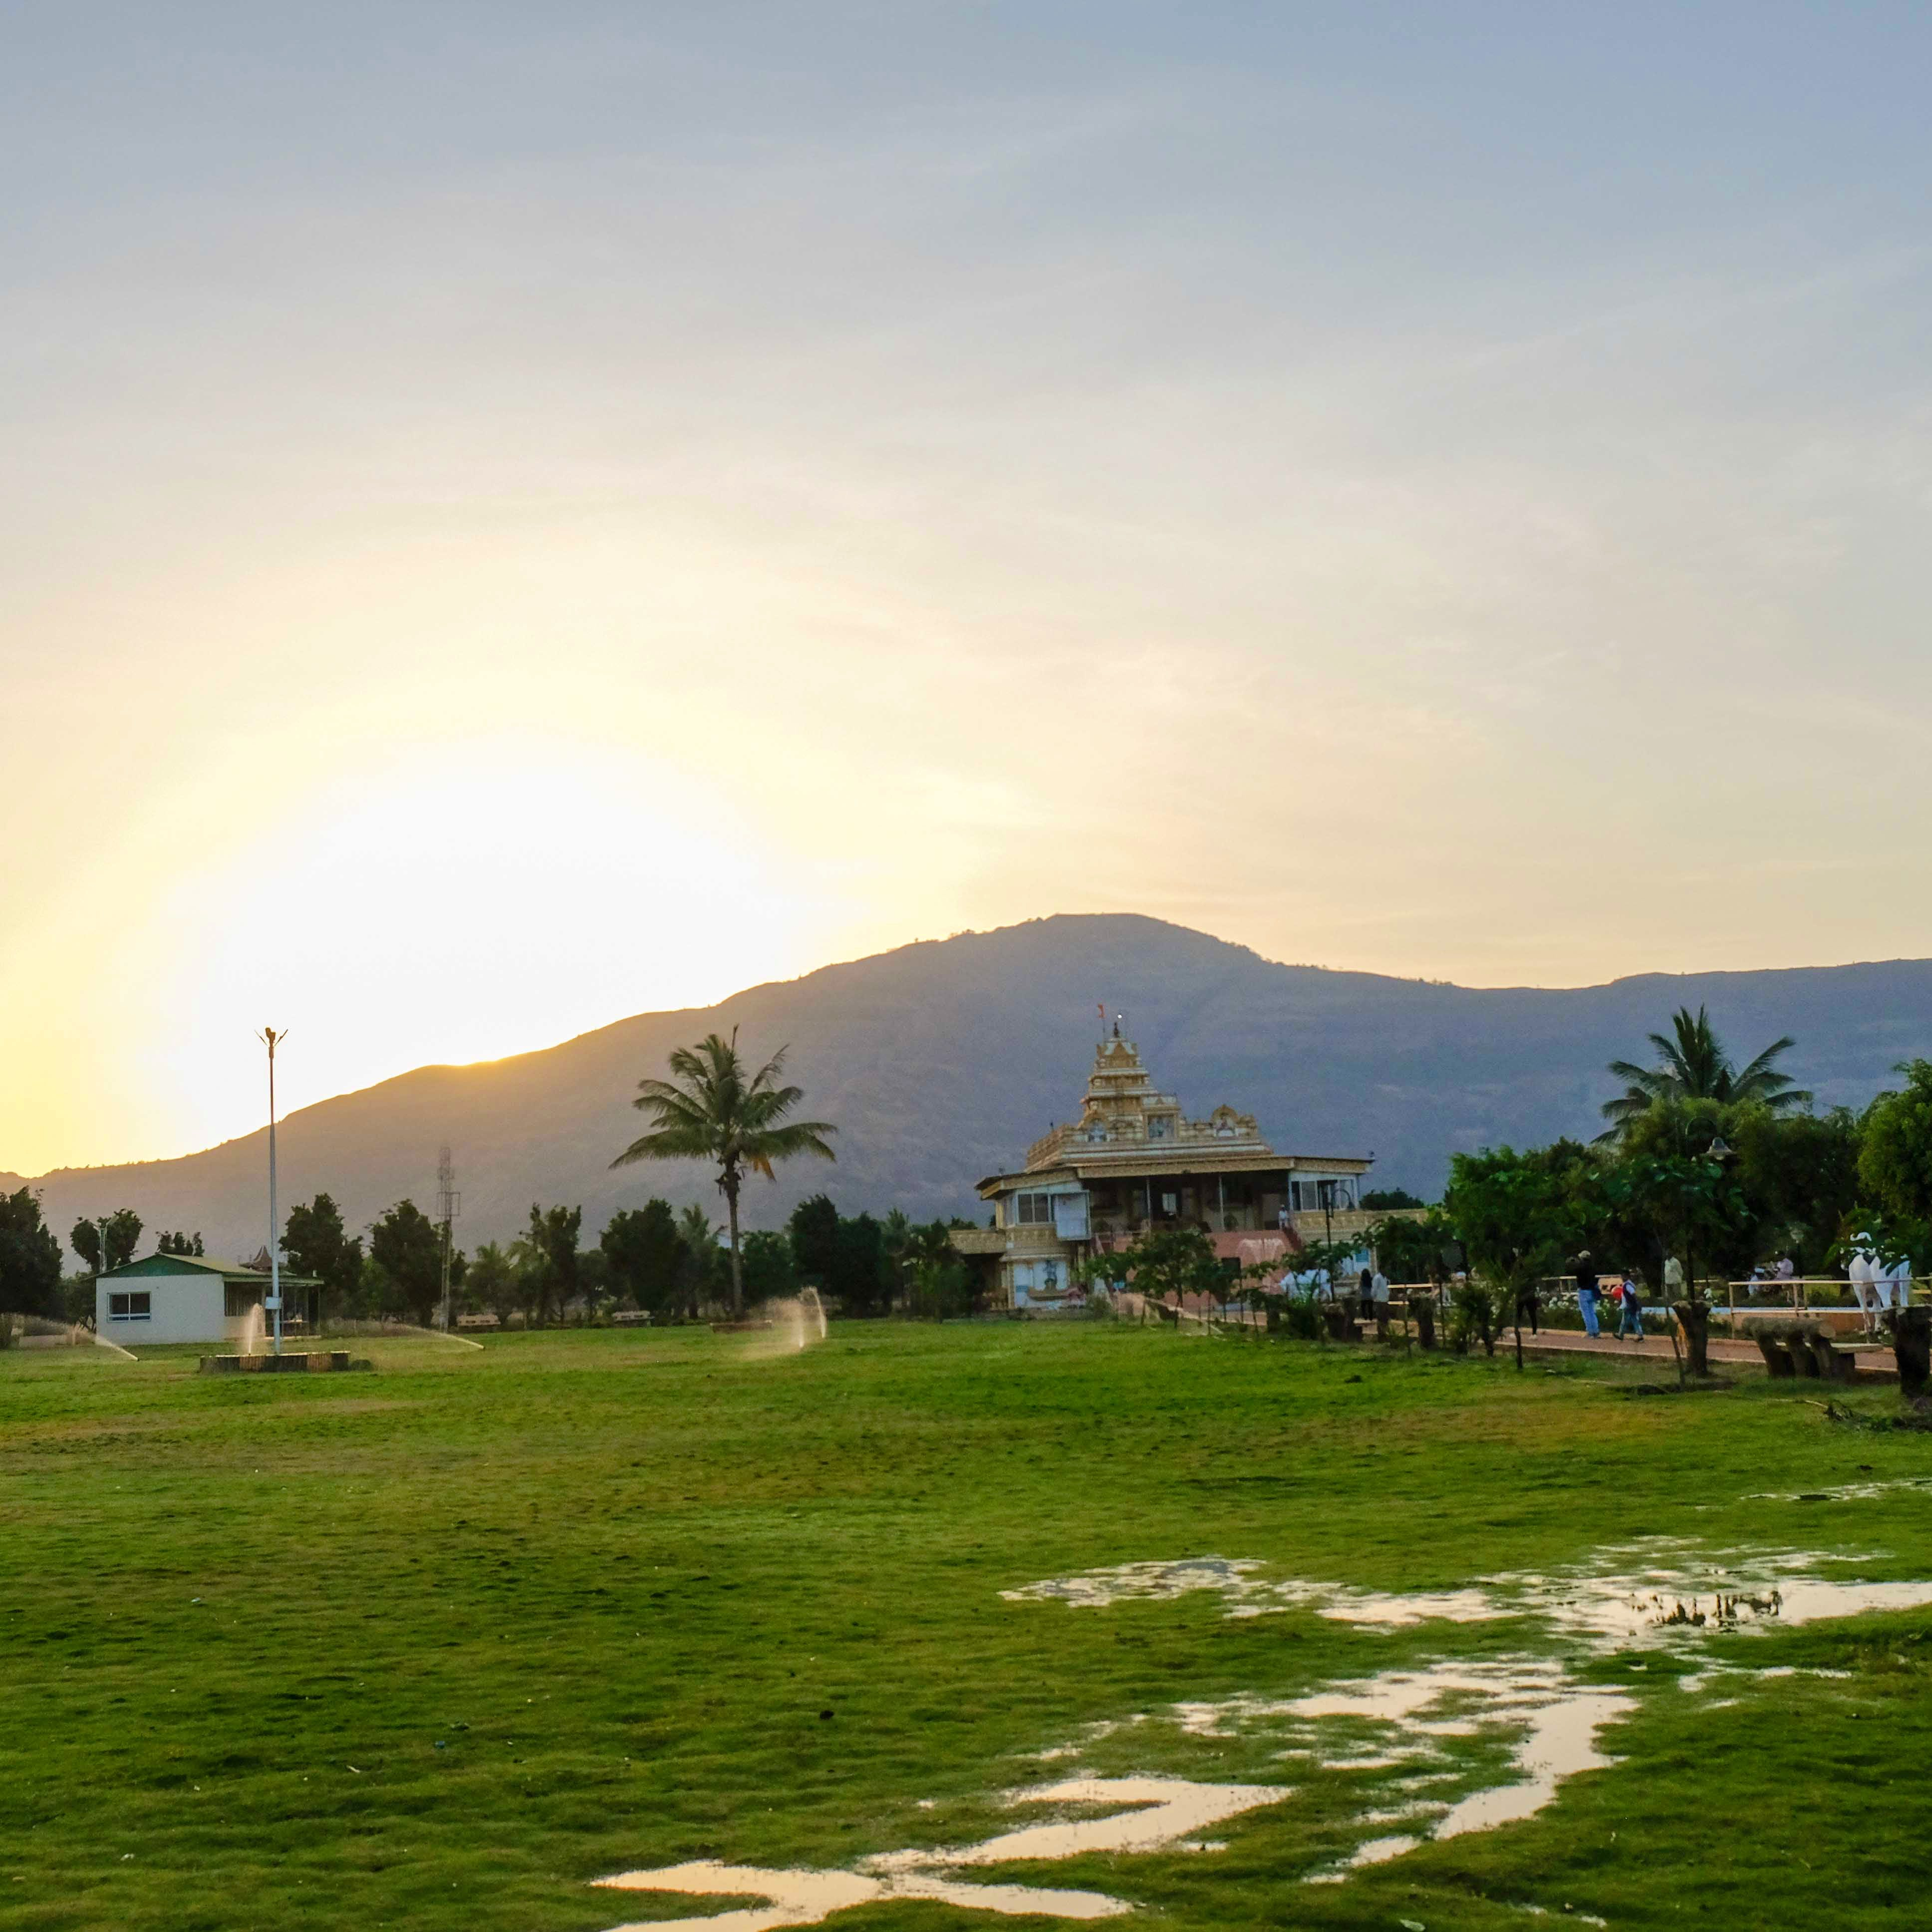 Sky,Daytime,Tree,Palm tree,Morning,Hill,Grass,Cloud,Arecales,Land lot